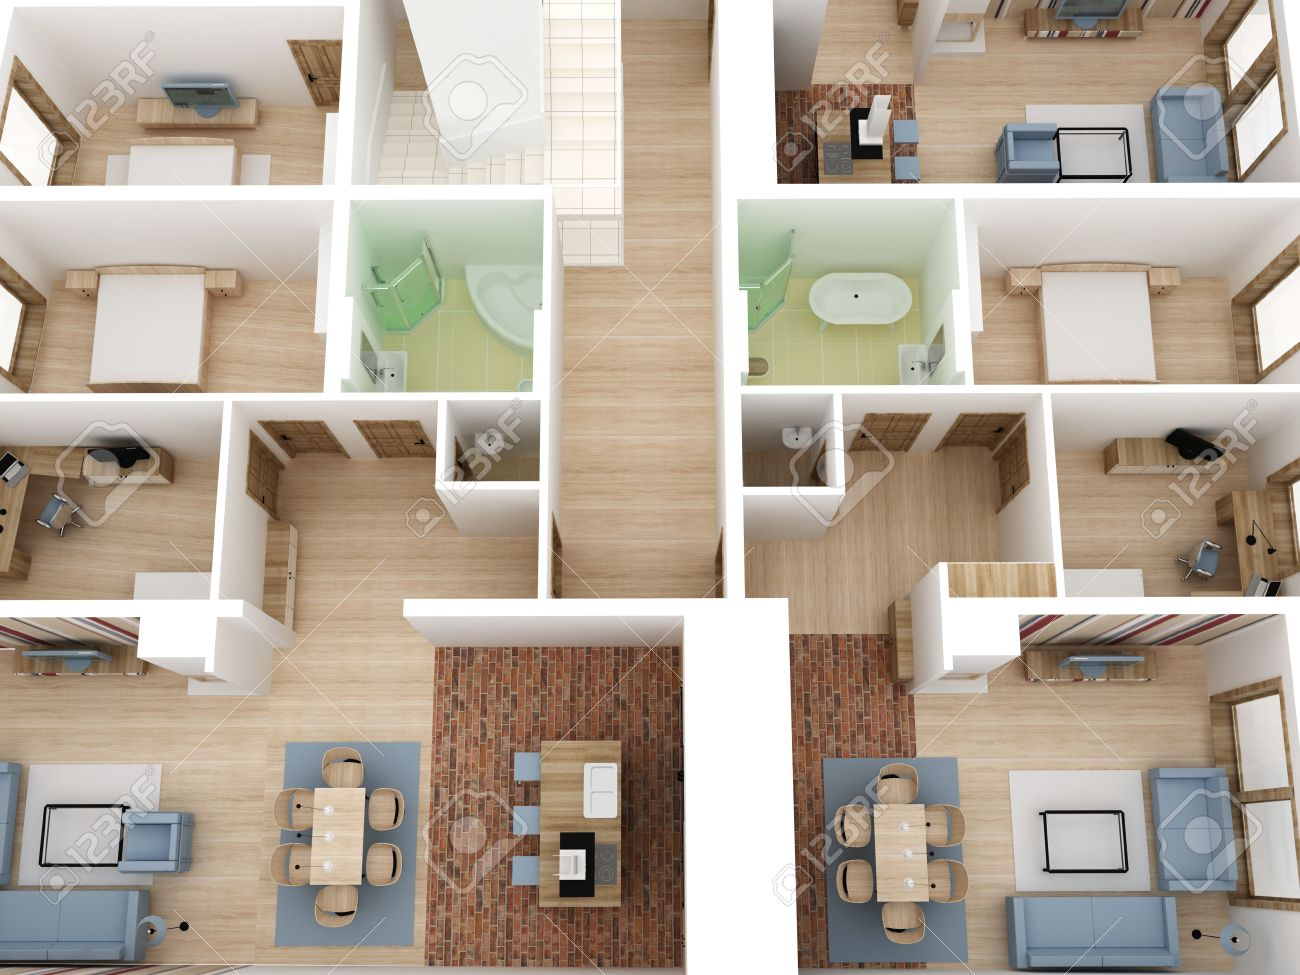 17774686 Apartments Level Top View Inter